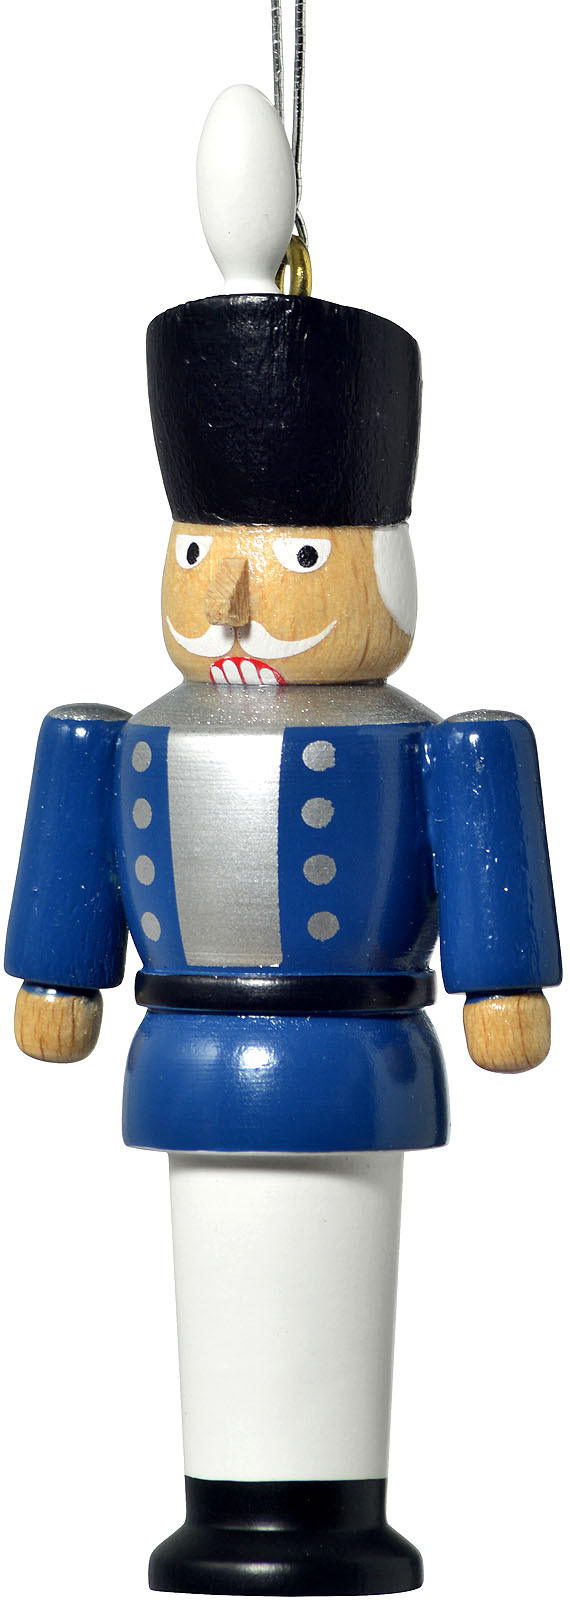 tree ornament, nutcracker, blue